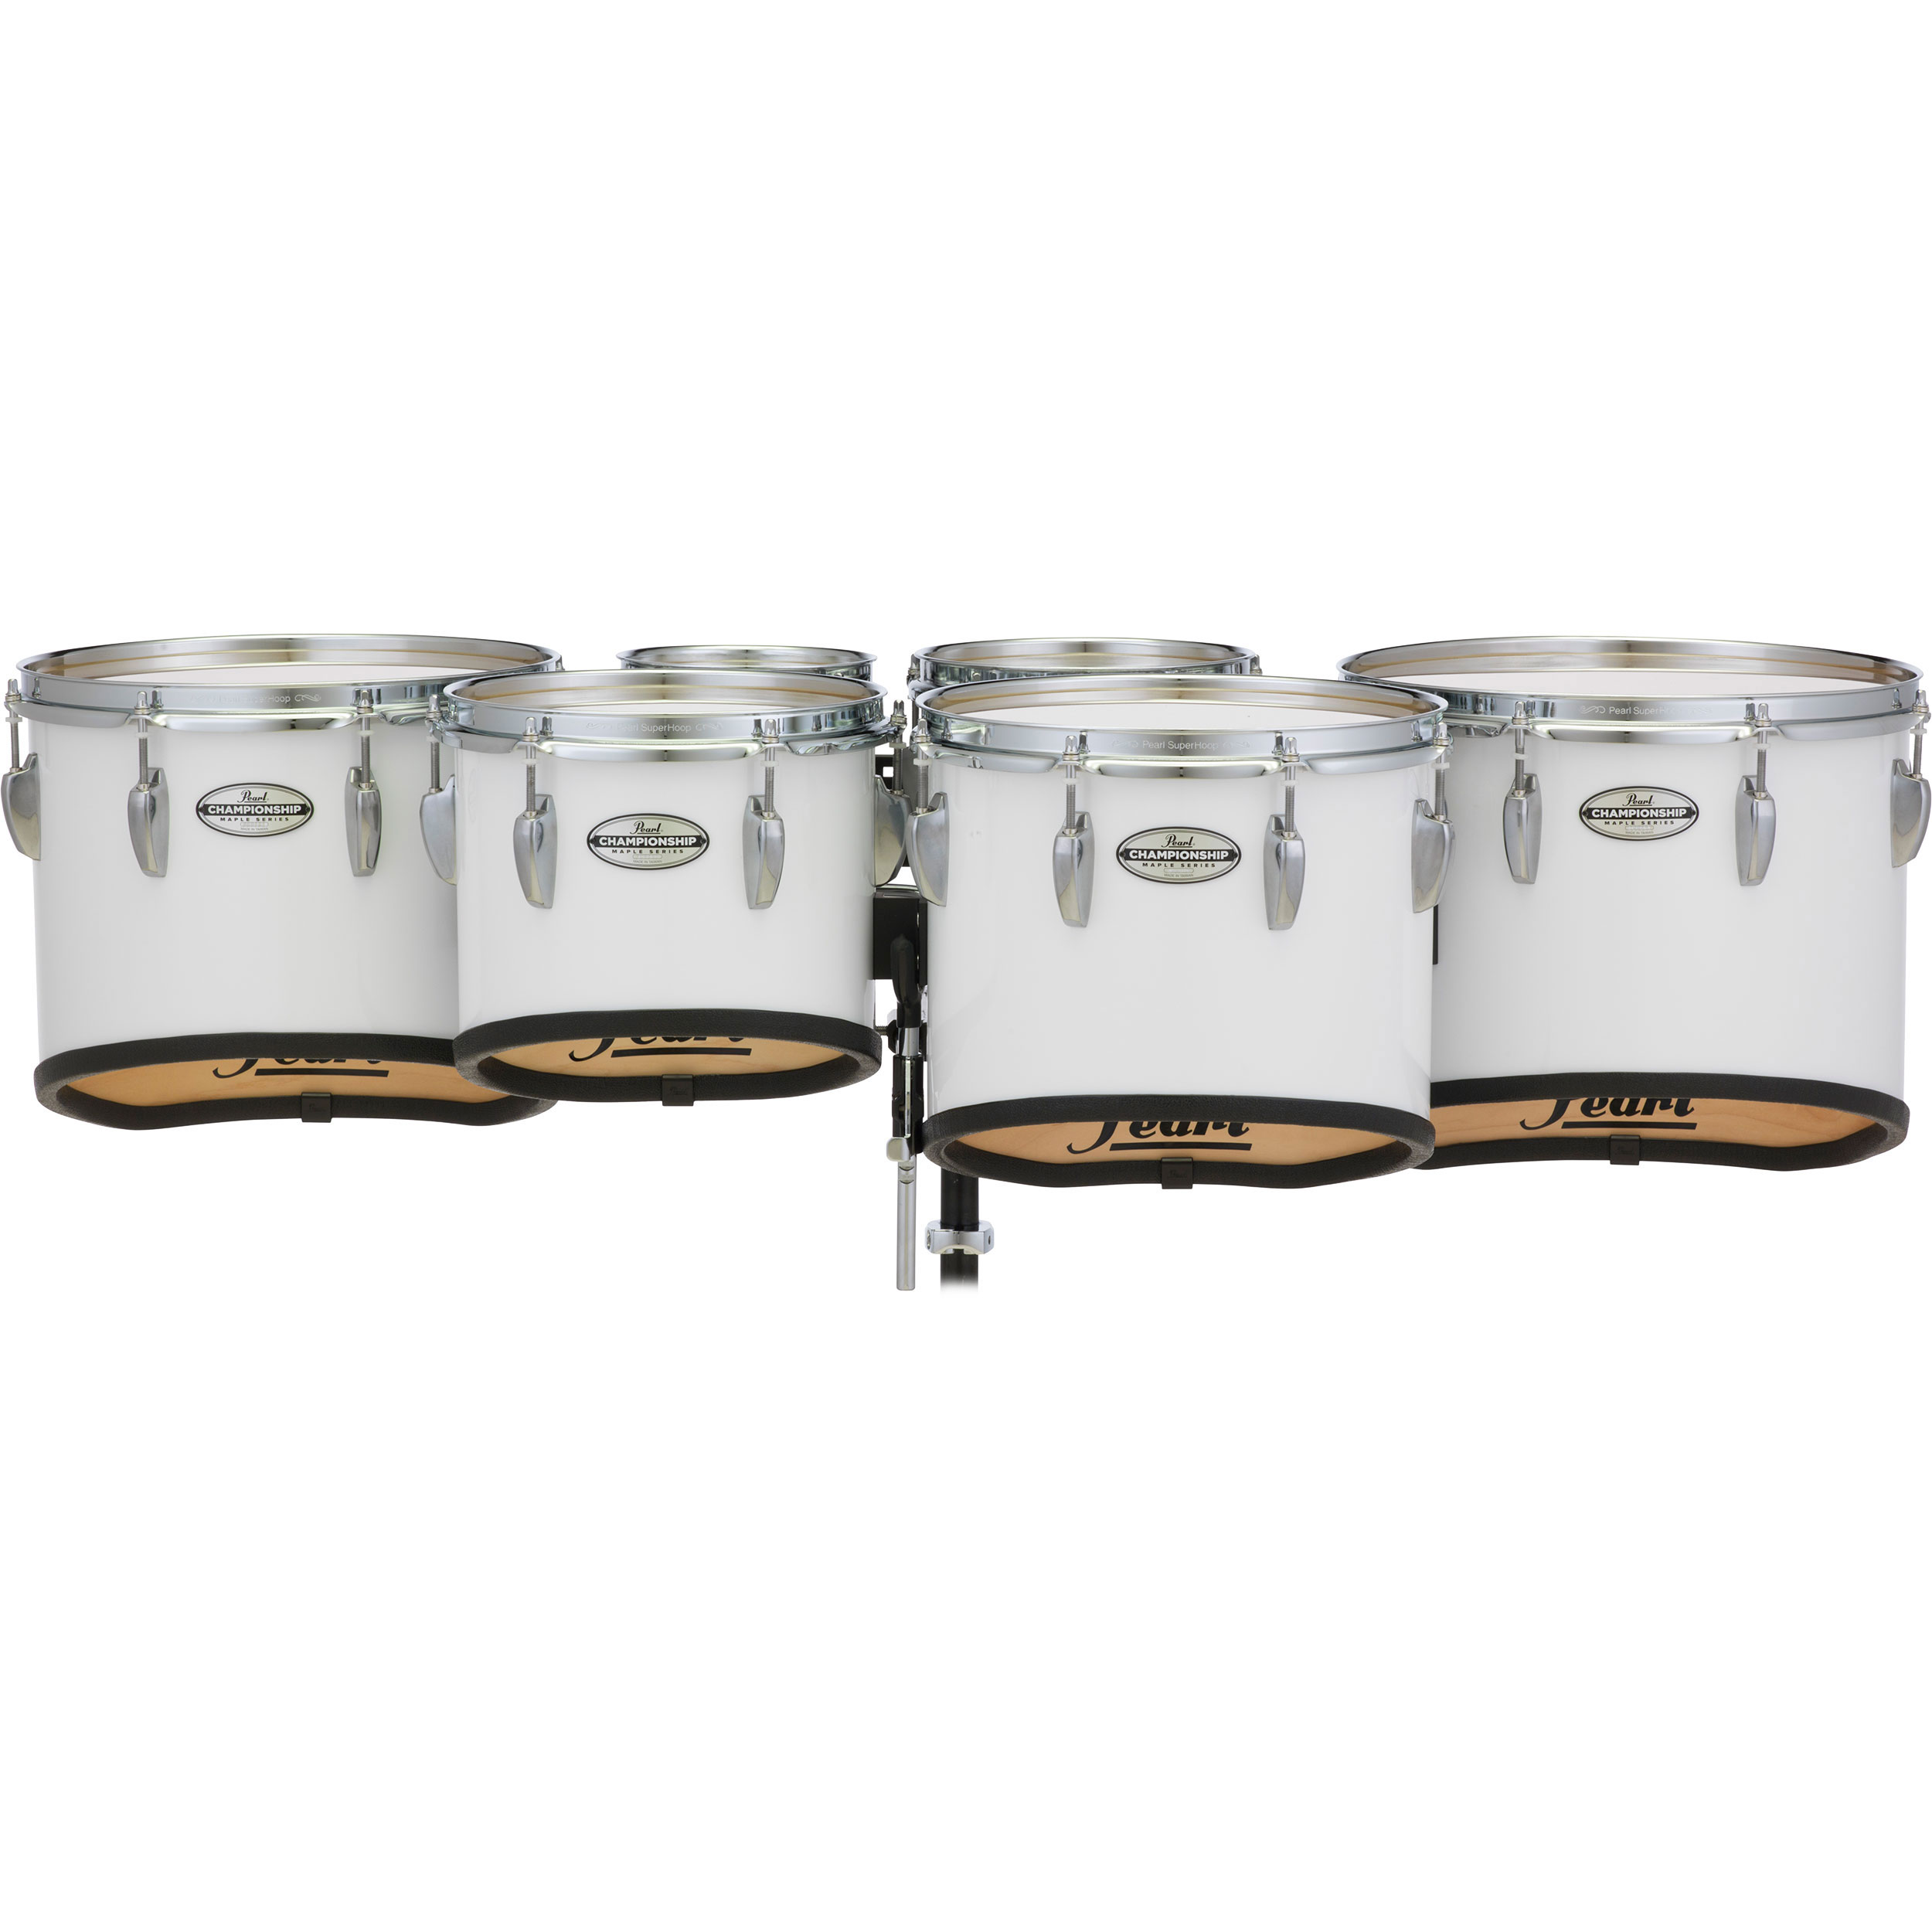 "Pearl 6-6-8-10-12-13"" PMTMS Championship Maple Shallow-Cut Marching Tenors in Wrap Finish"